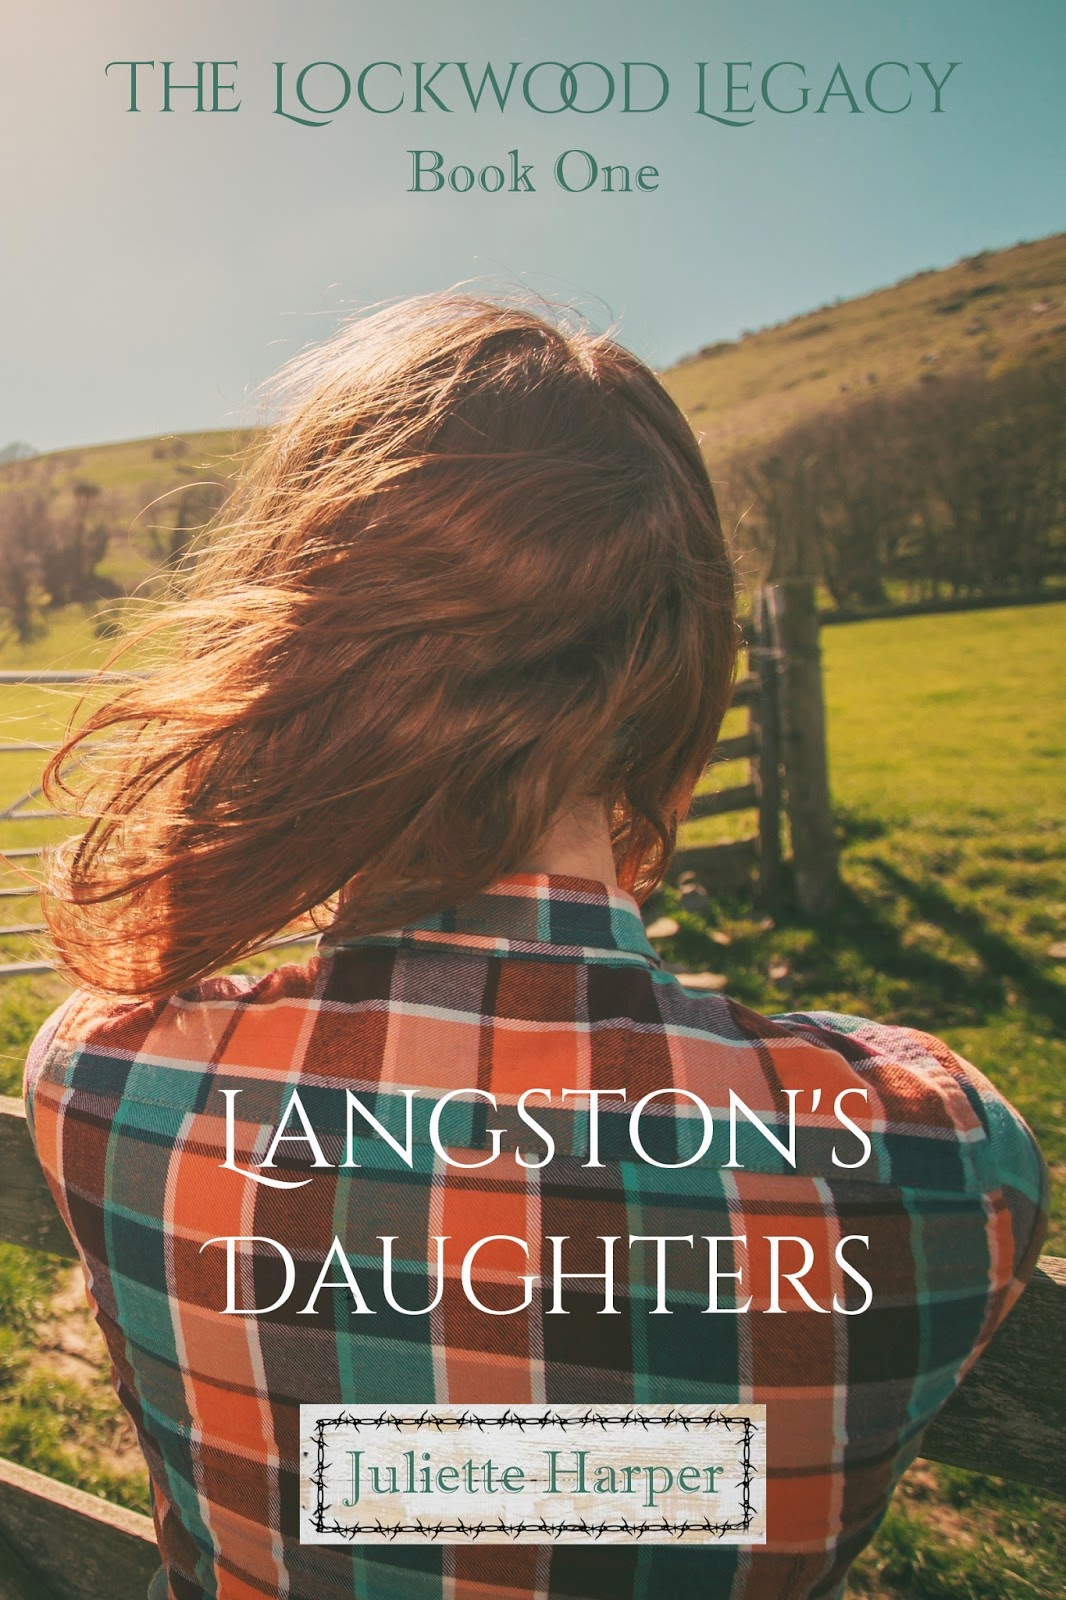 https://www.goodreads.com/book/show/23665824-langston-s-daughters?from_search=true